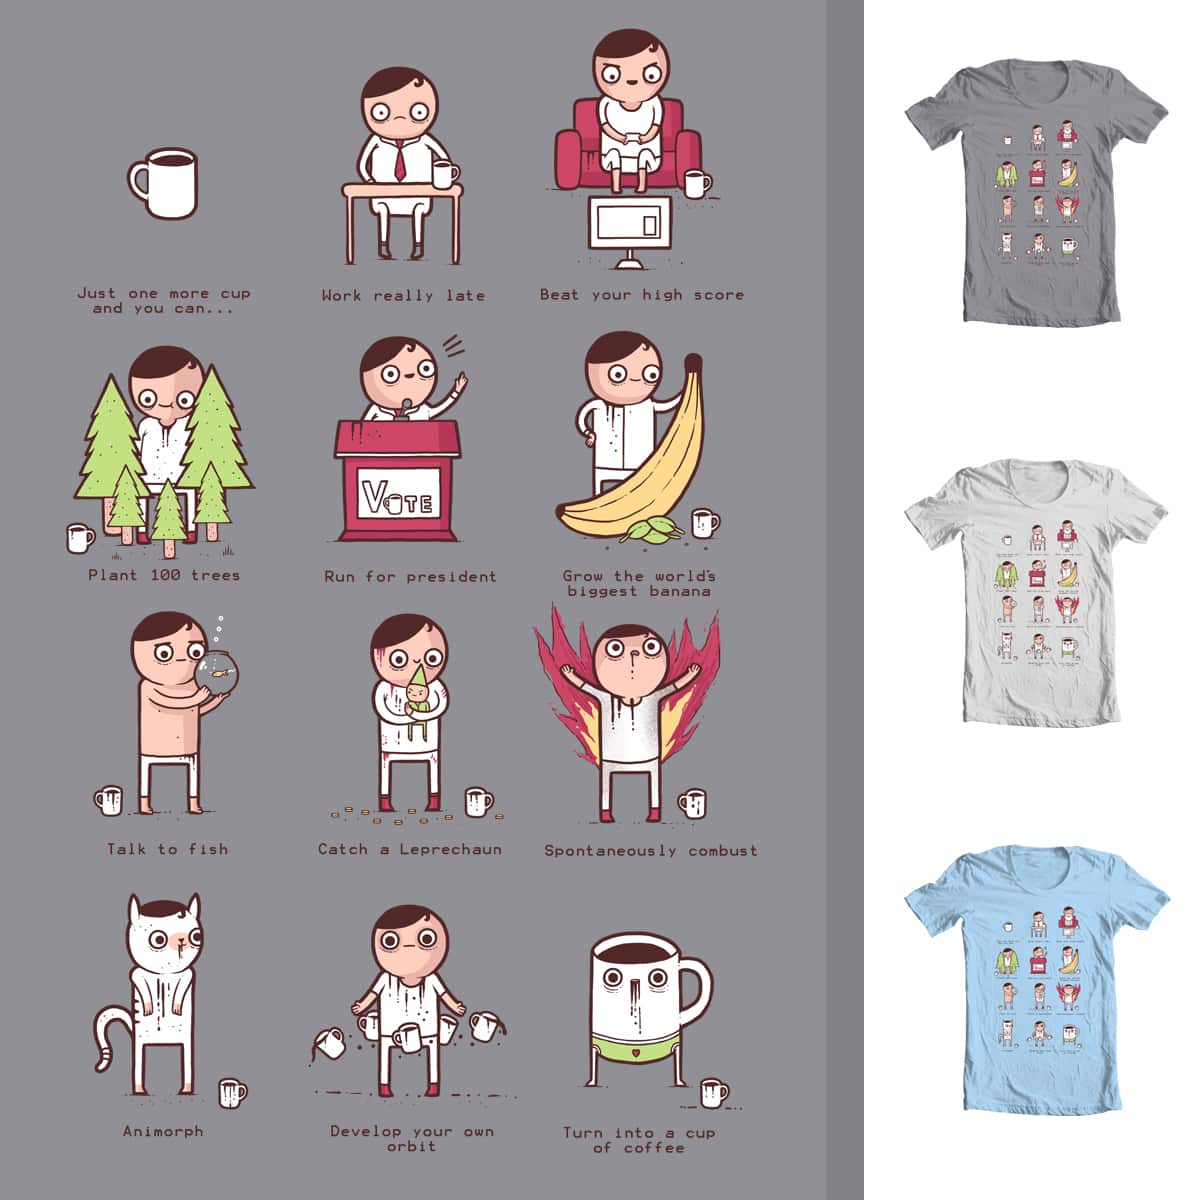 Just one more cup by randyotter3000 and davidfromdallas on Threadless